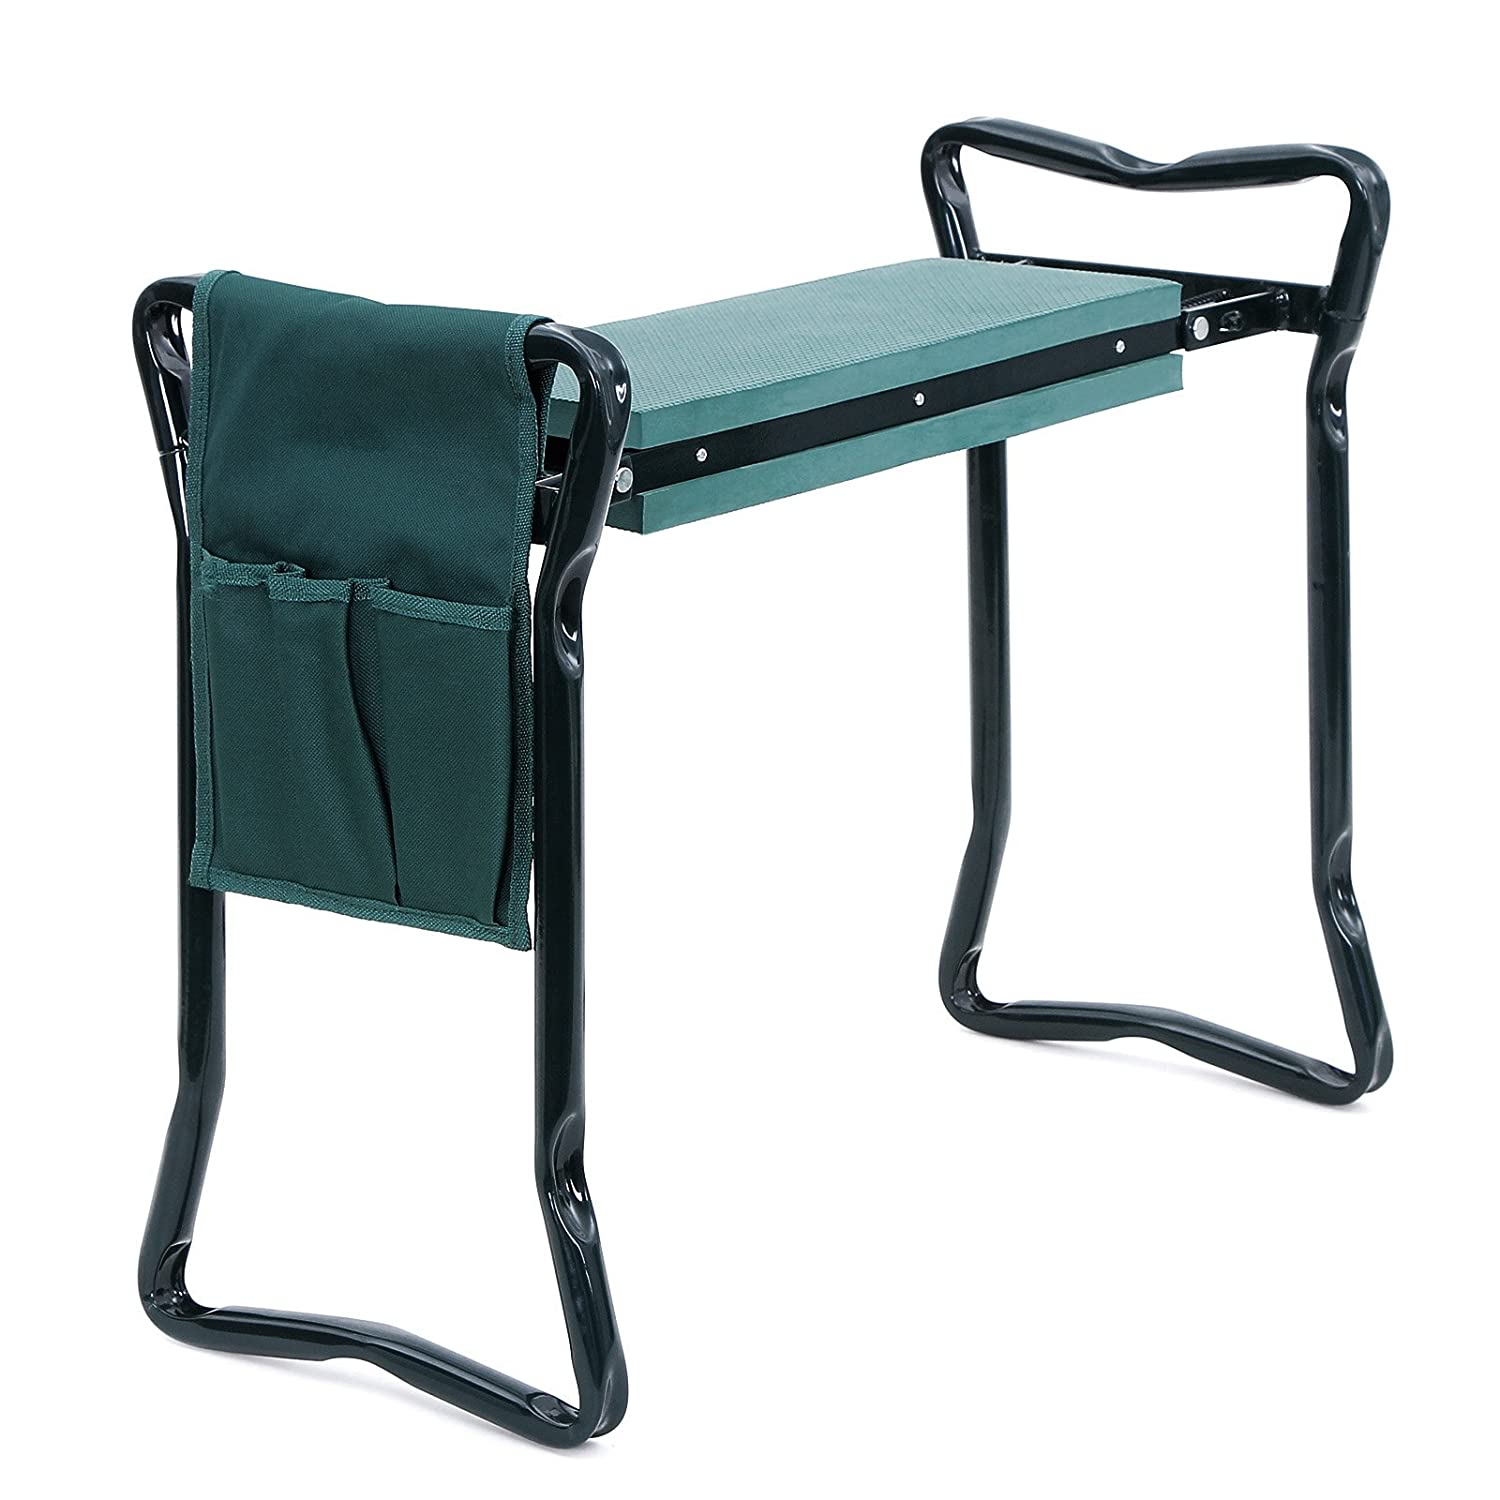 Garden Kneeler Seat Bench with Handles